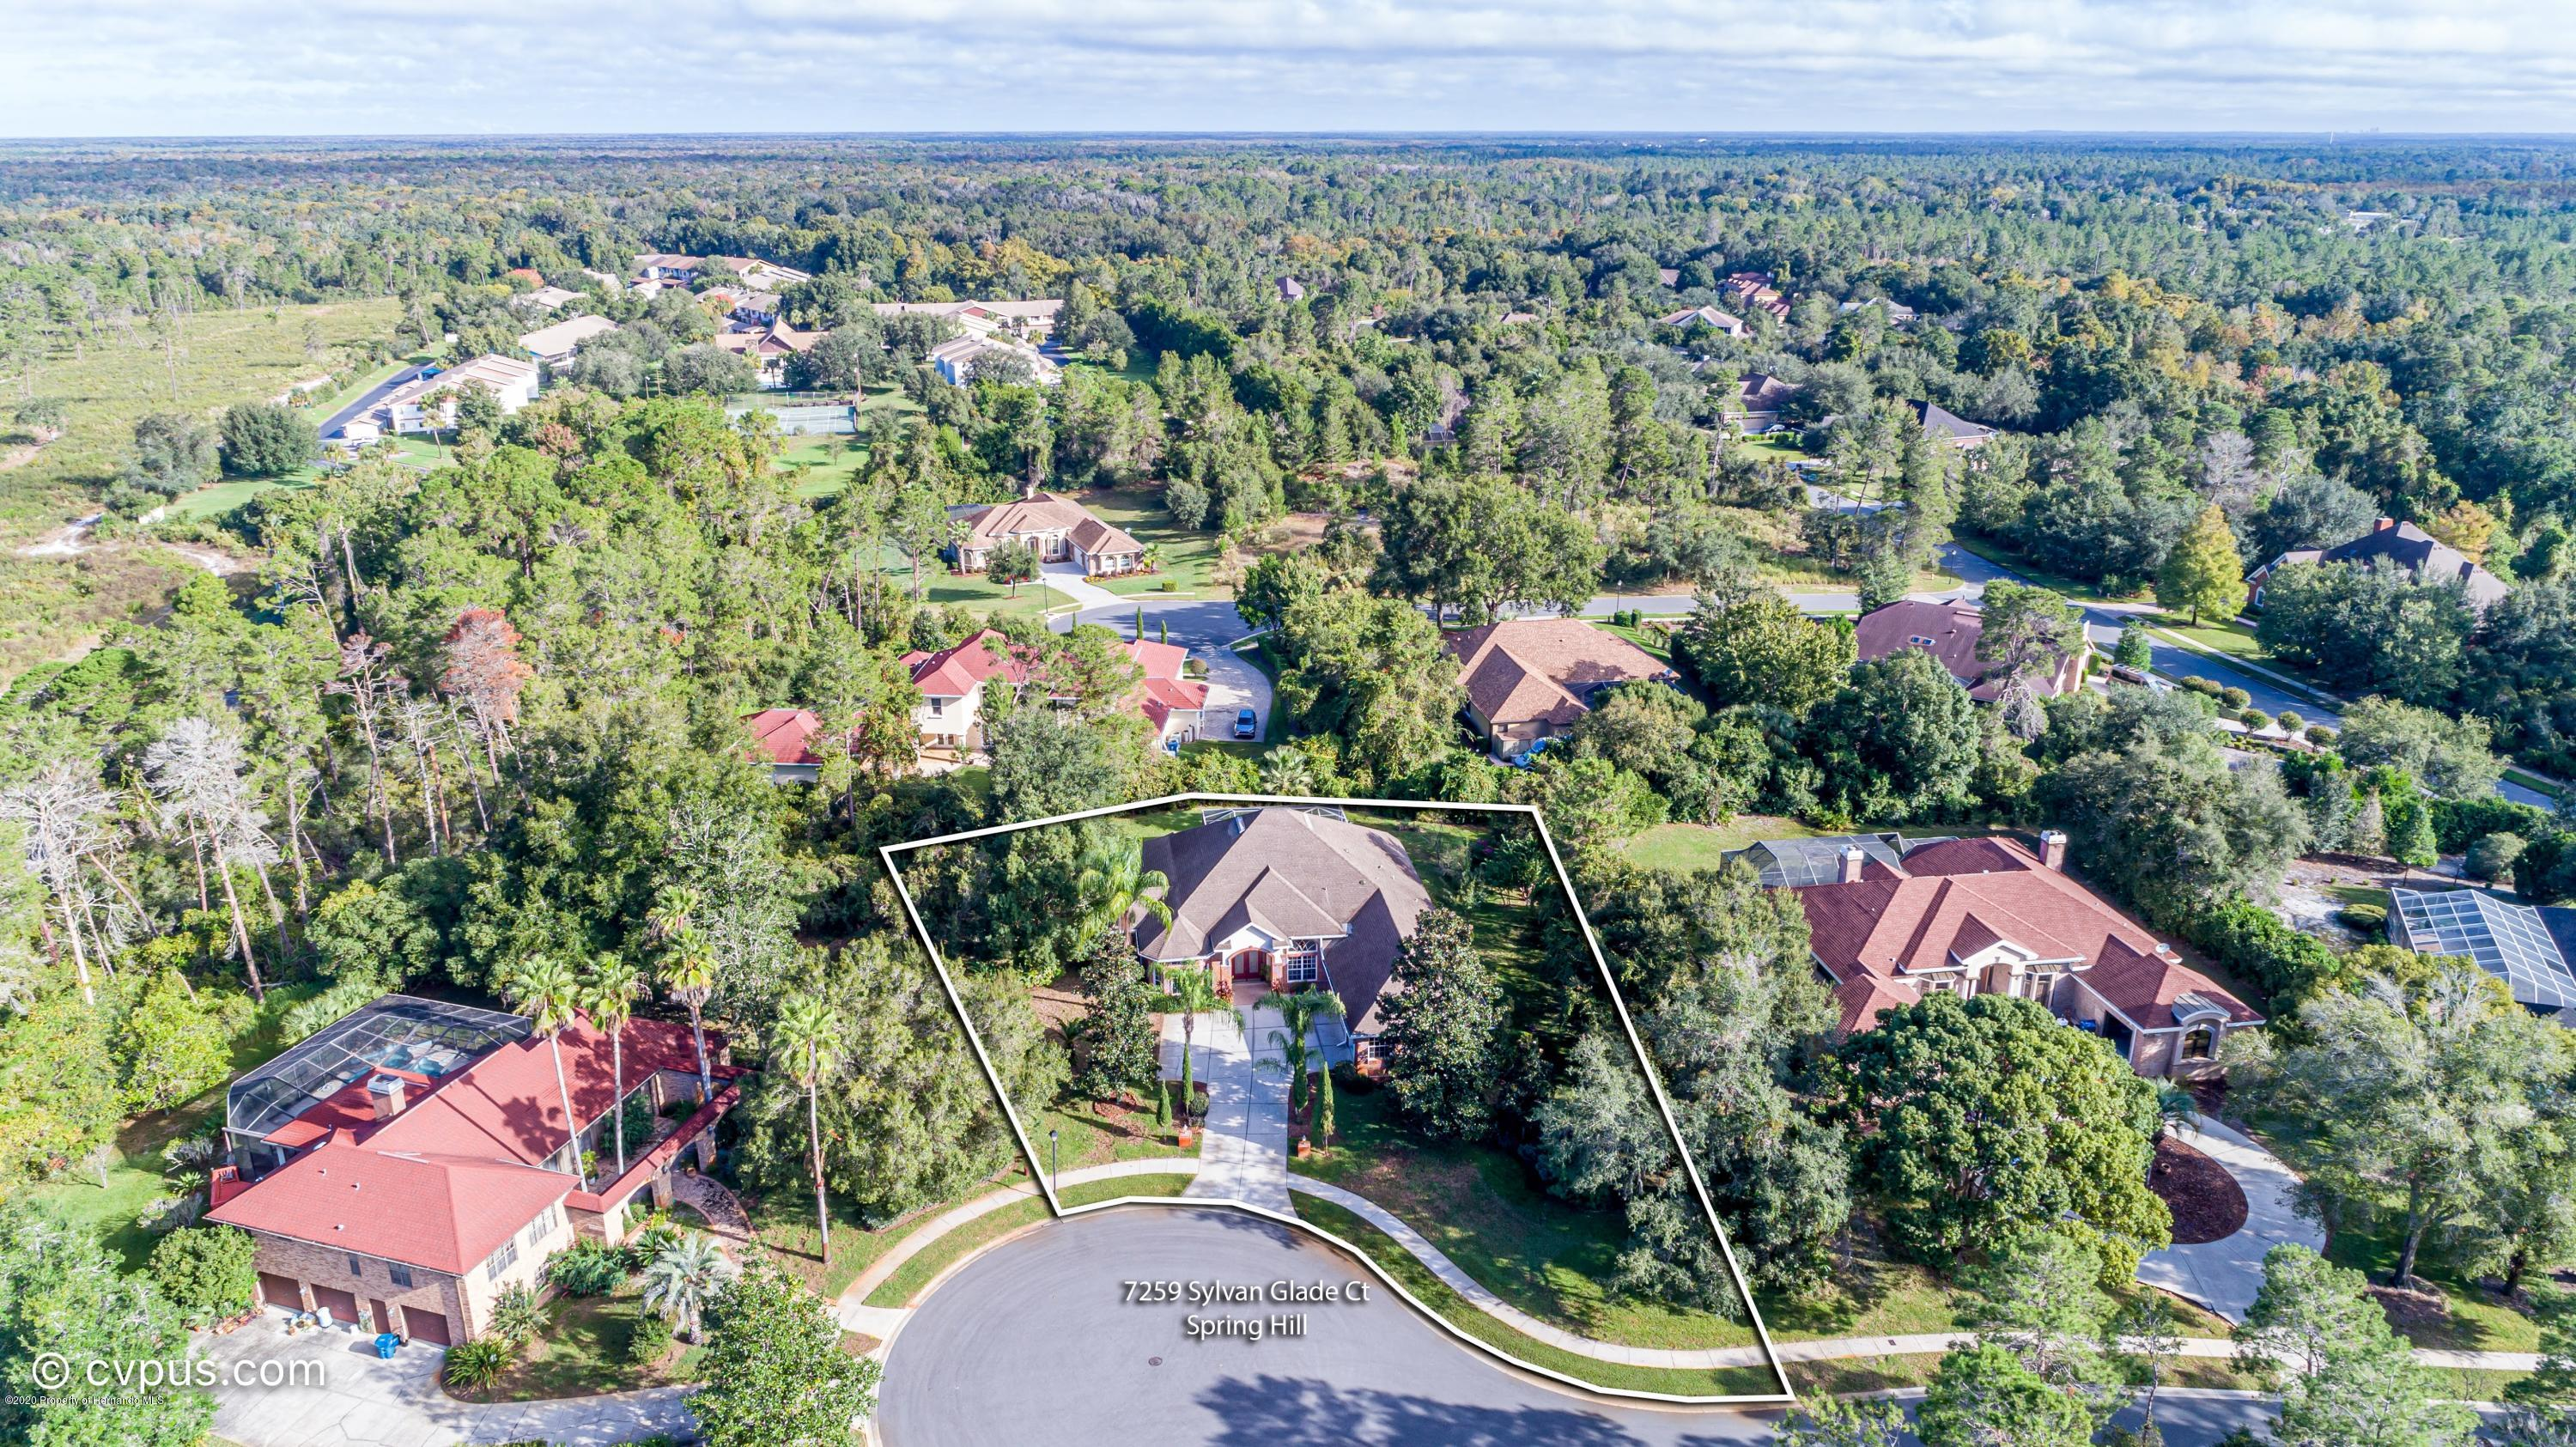 Details for 7259 Sylvan Glade Court, Spring Hill, FL 34607